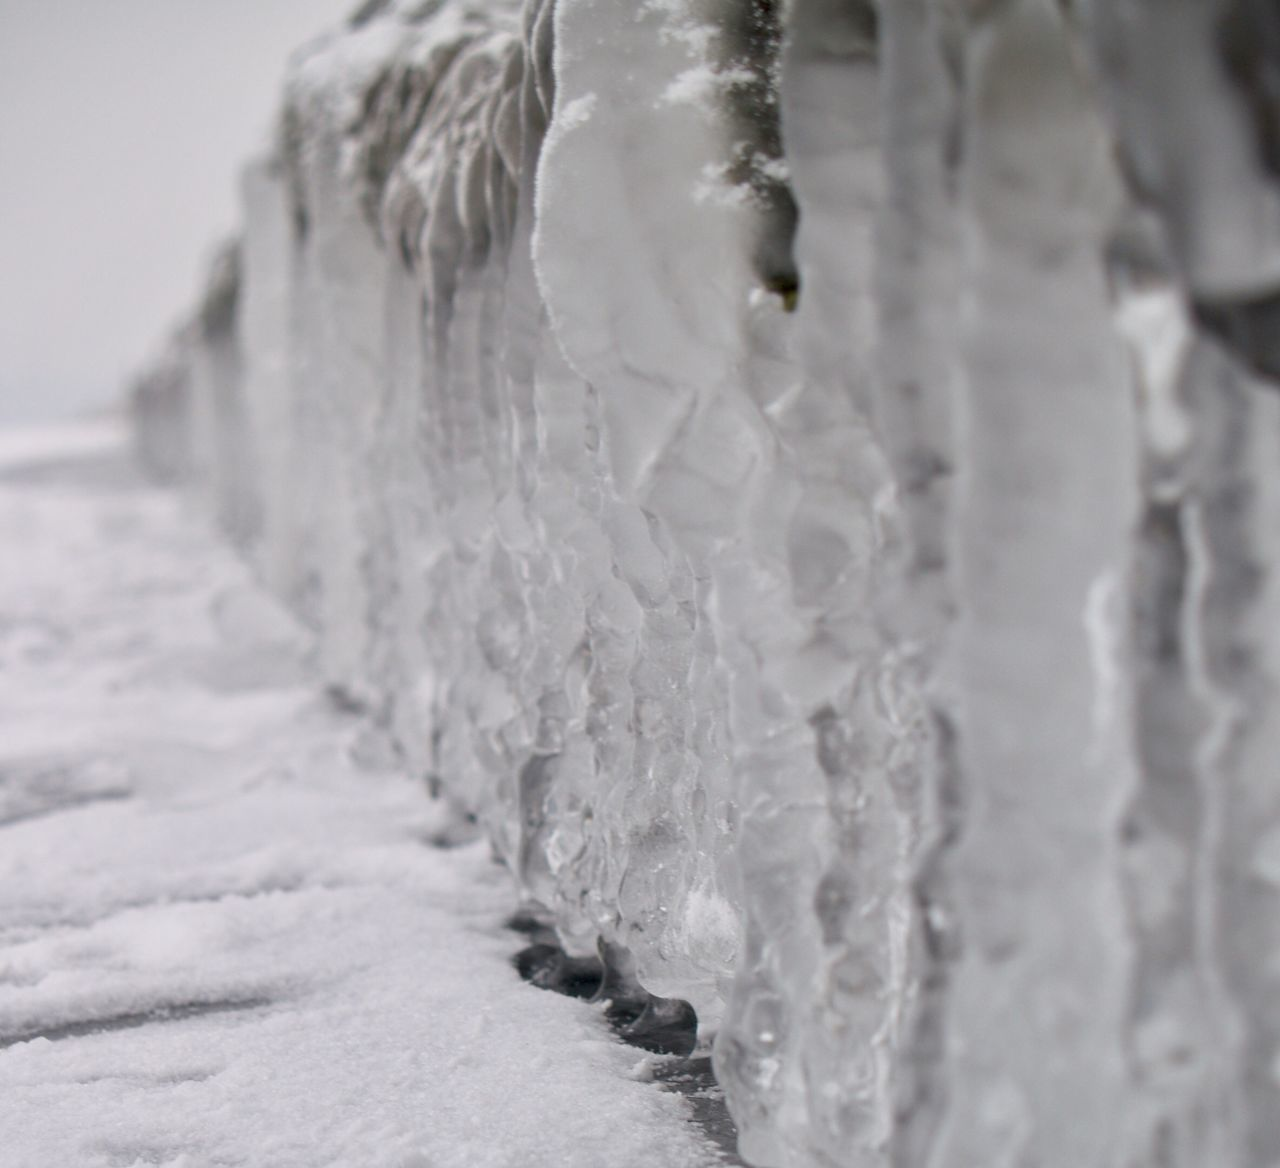 cold temperature, ice, winter, close-up, snow, frozen, no people, nature, day, beauty in nature, outdoors, freshness